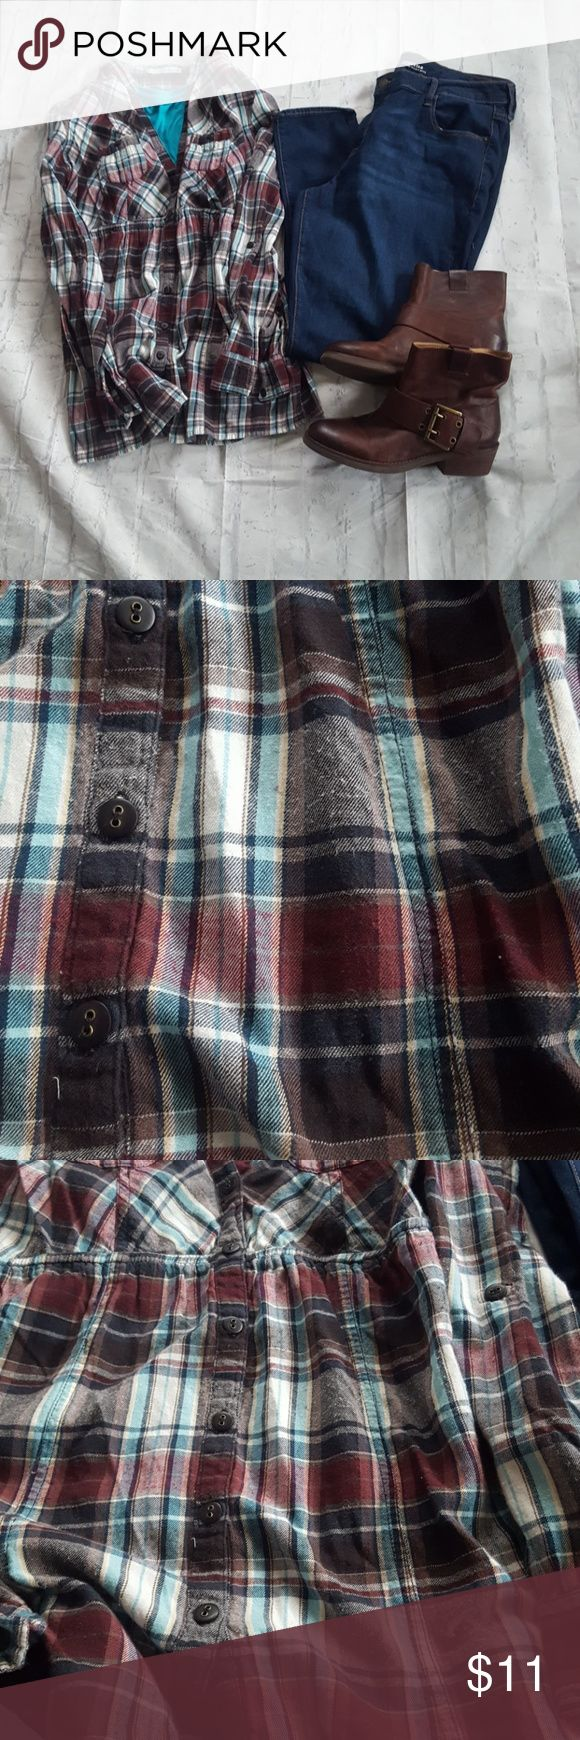 Plaid flannel tunic Maurices plaid flannel tunic.  Super soft and an elastic waist make this a perfect fall top. There is piling as noted in pictures 2 and 3. Maurices Tops Tunics